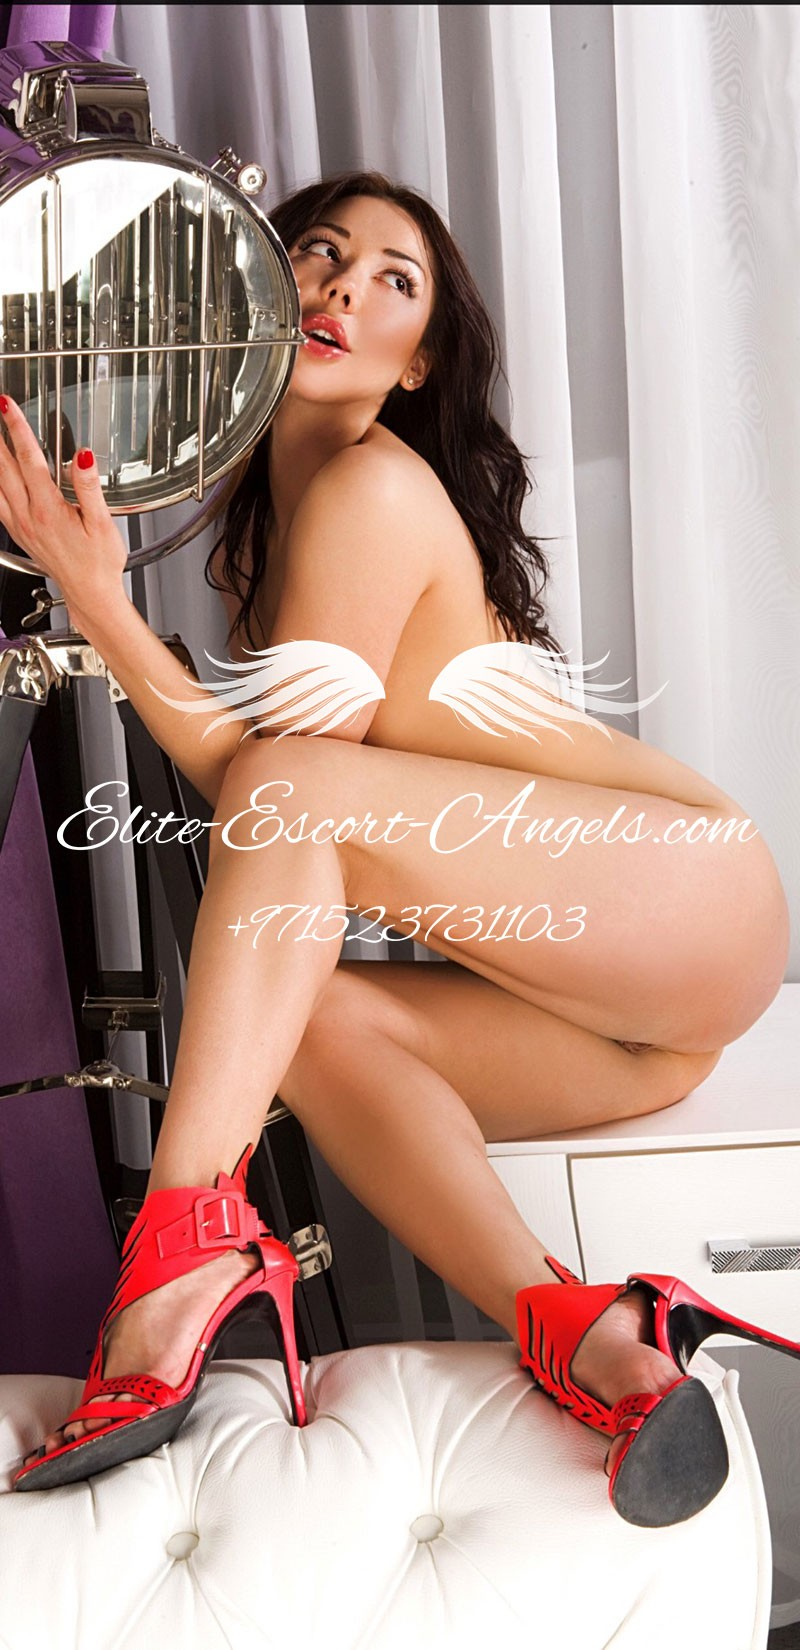 polish escort girls vip escorts